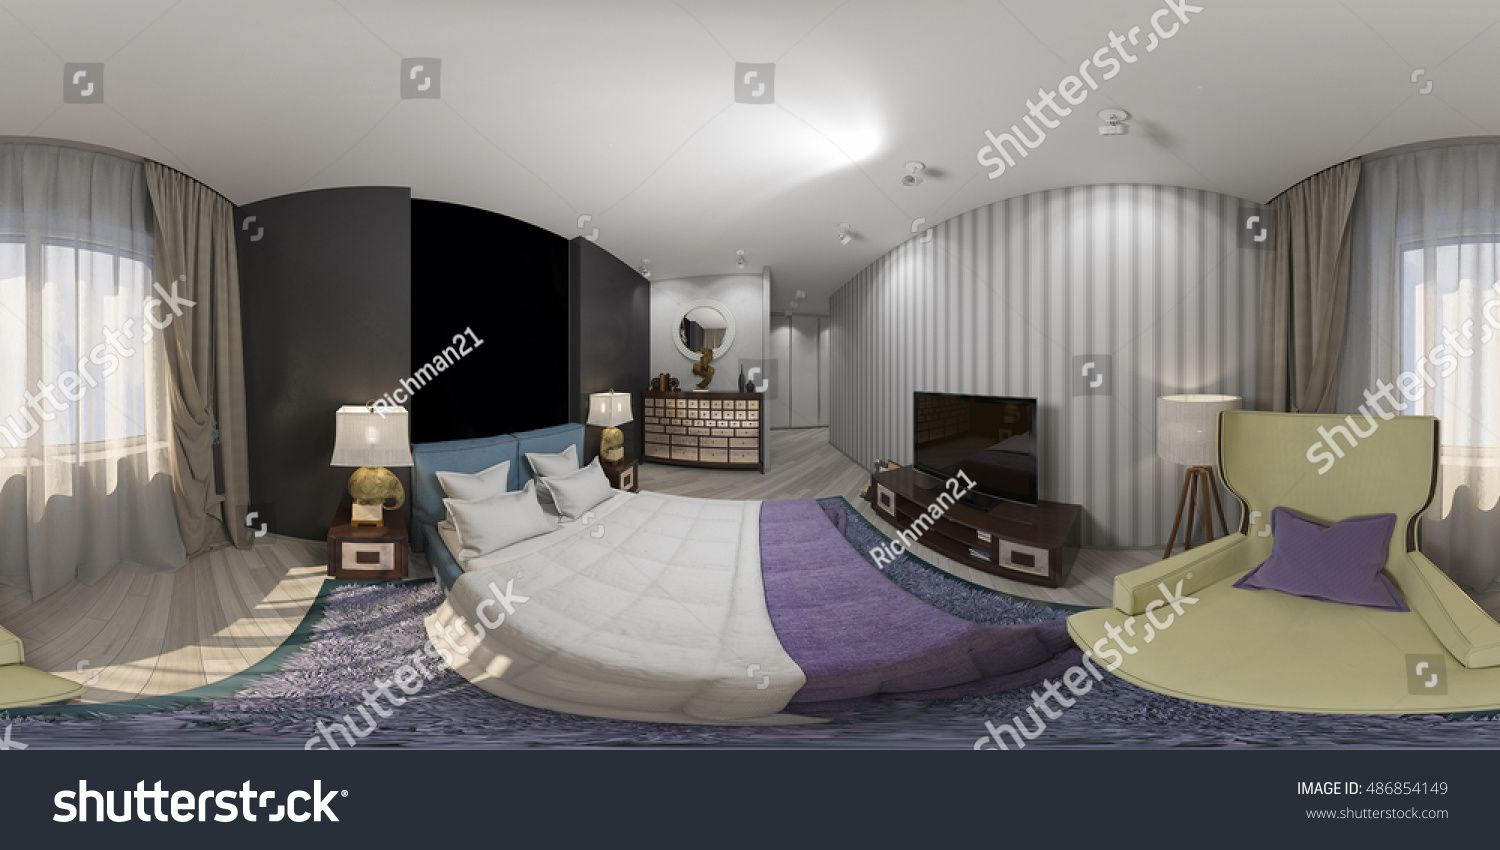 3d Illustration Of Interior Design Spherical 360 Degrees Seamless Panorama Of Bedroom Interior Design Degree Interior Design Interior Design Bedroom